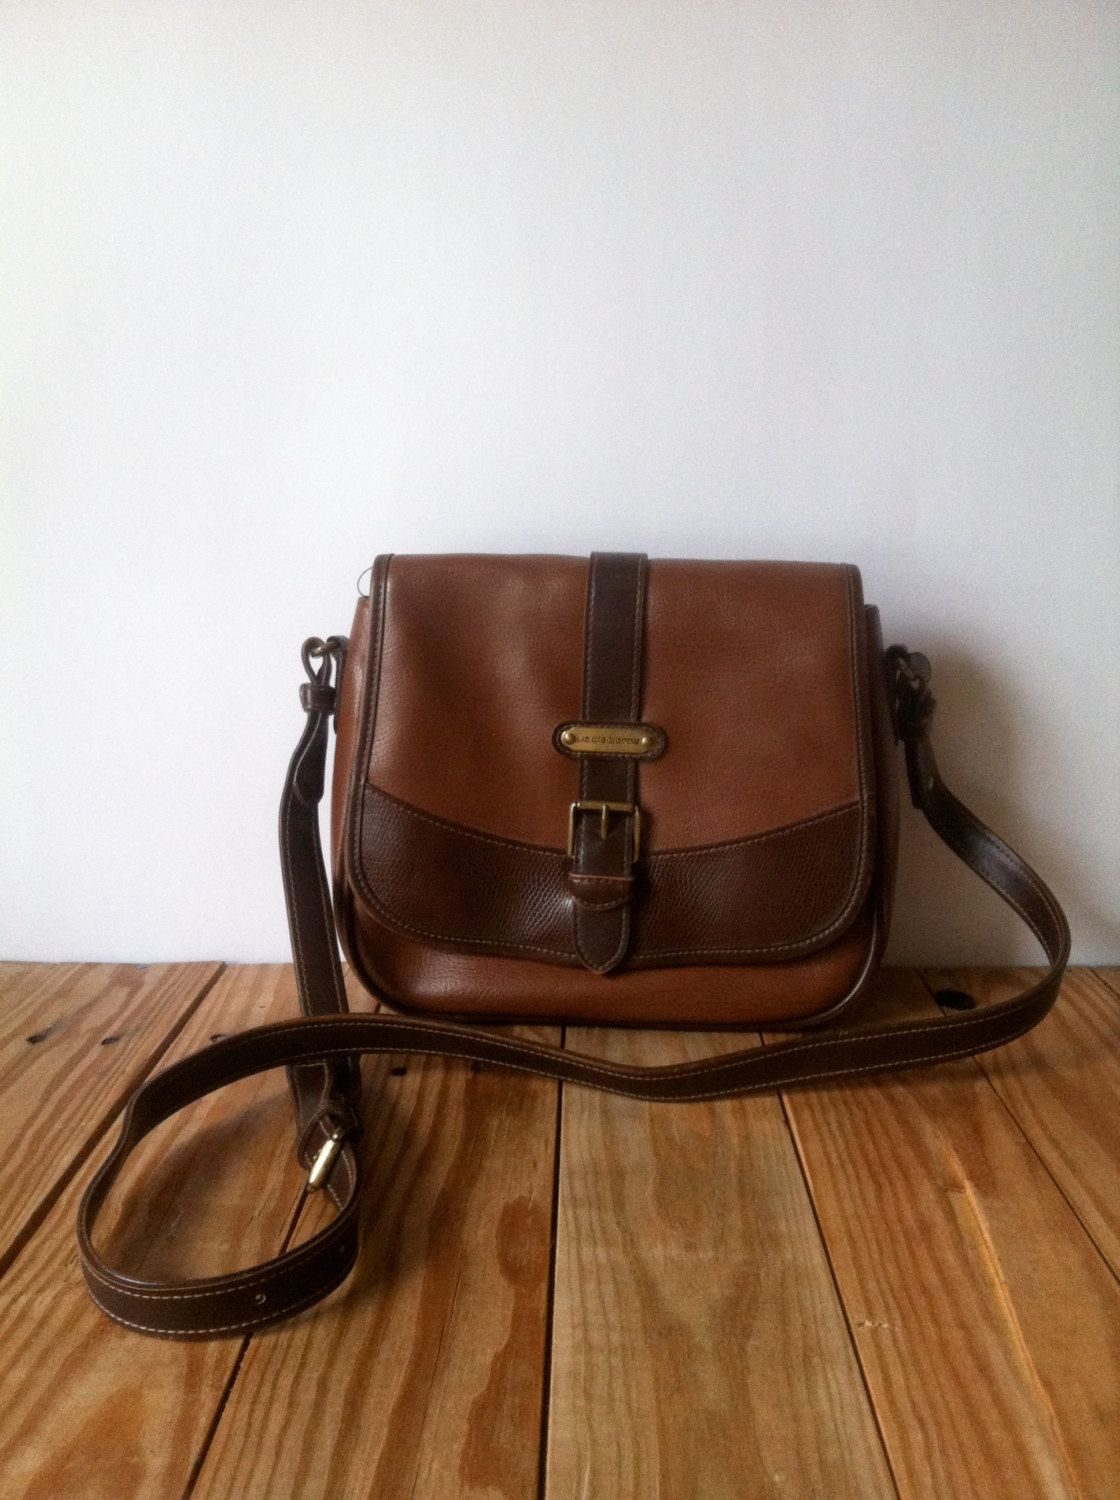 Genuine Leather Purse - Vintage Earthy Simple Rustic Liz Claiborne Shoulder Bag  Cross Body Handbag Brown   Tan via Etsy. 303b150b32895